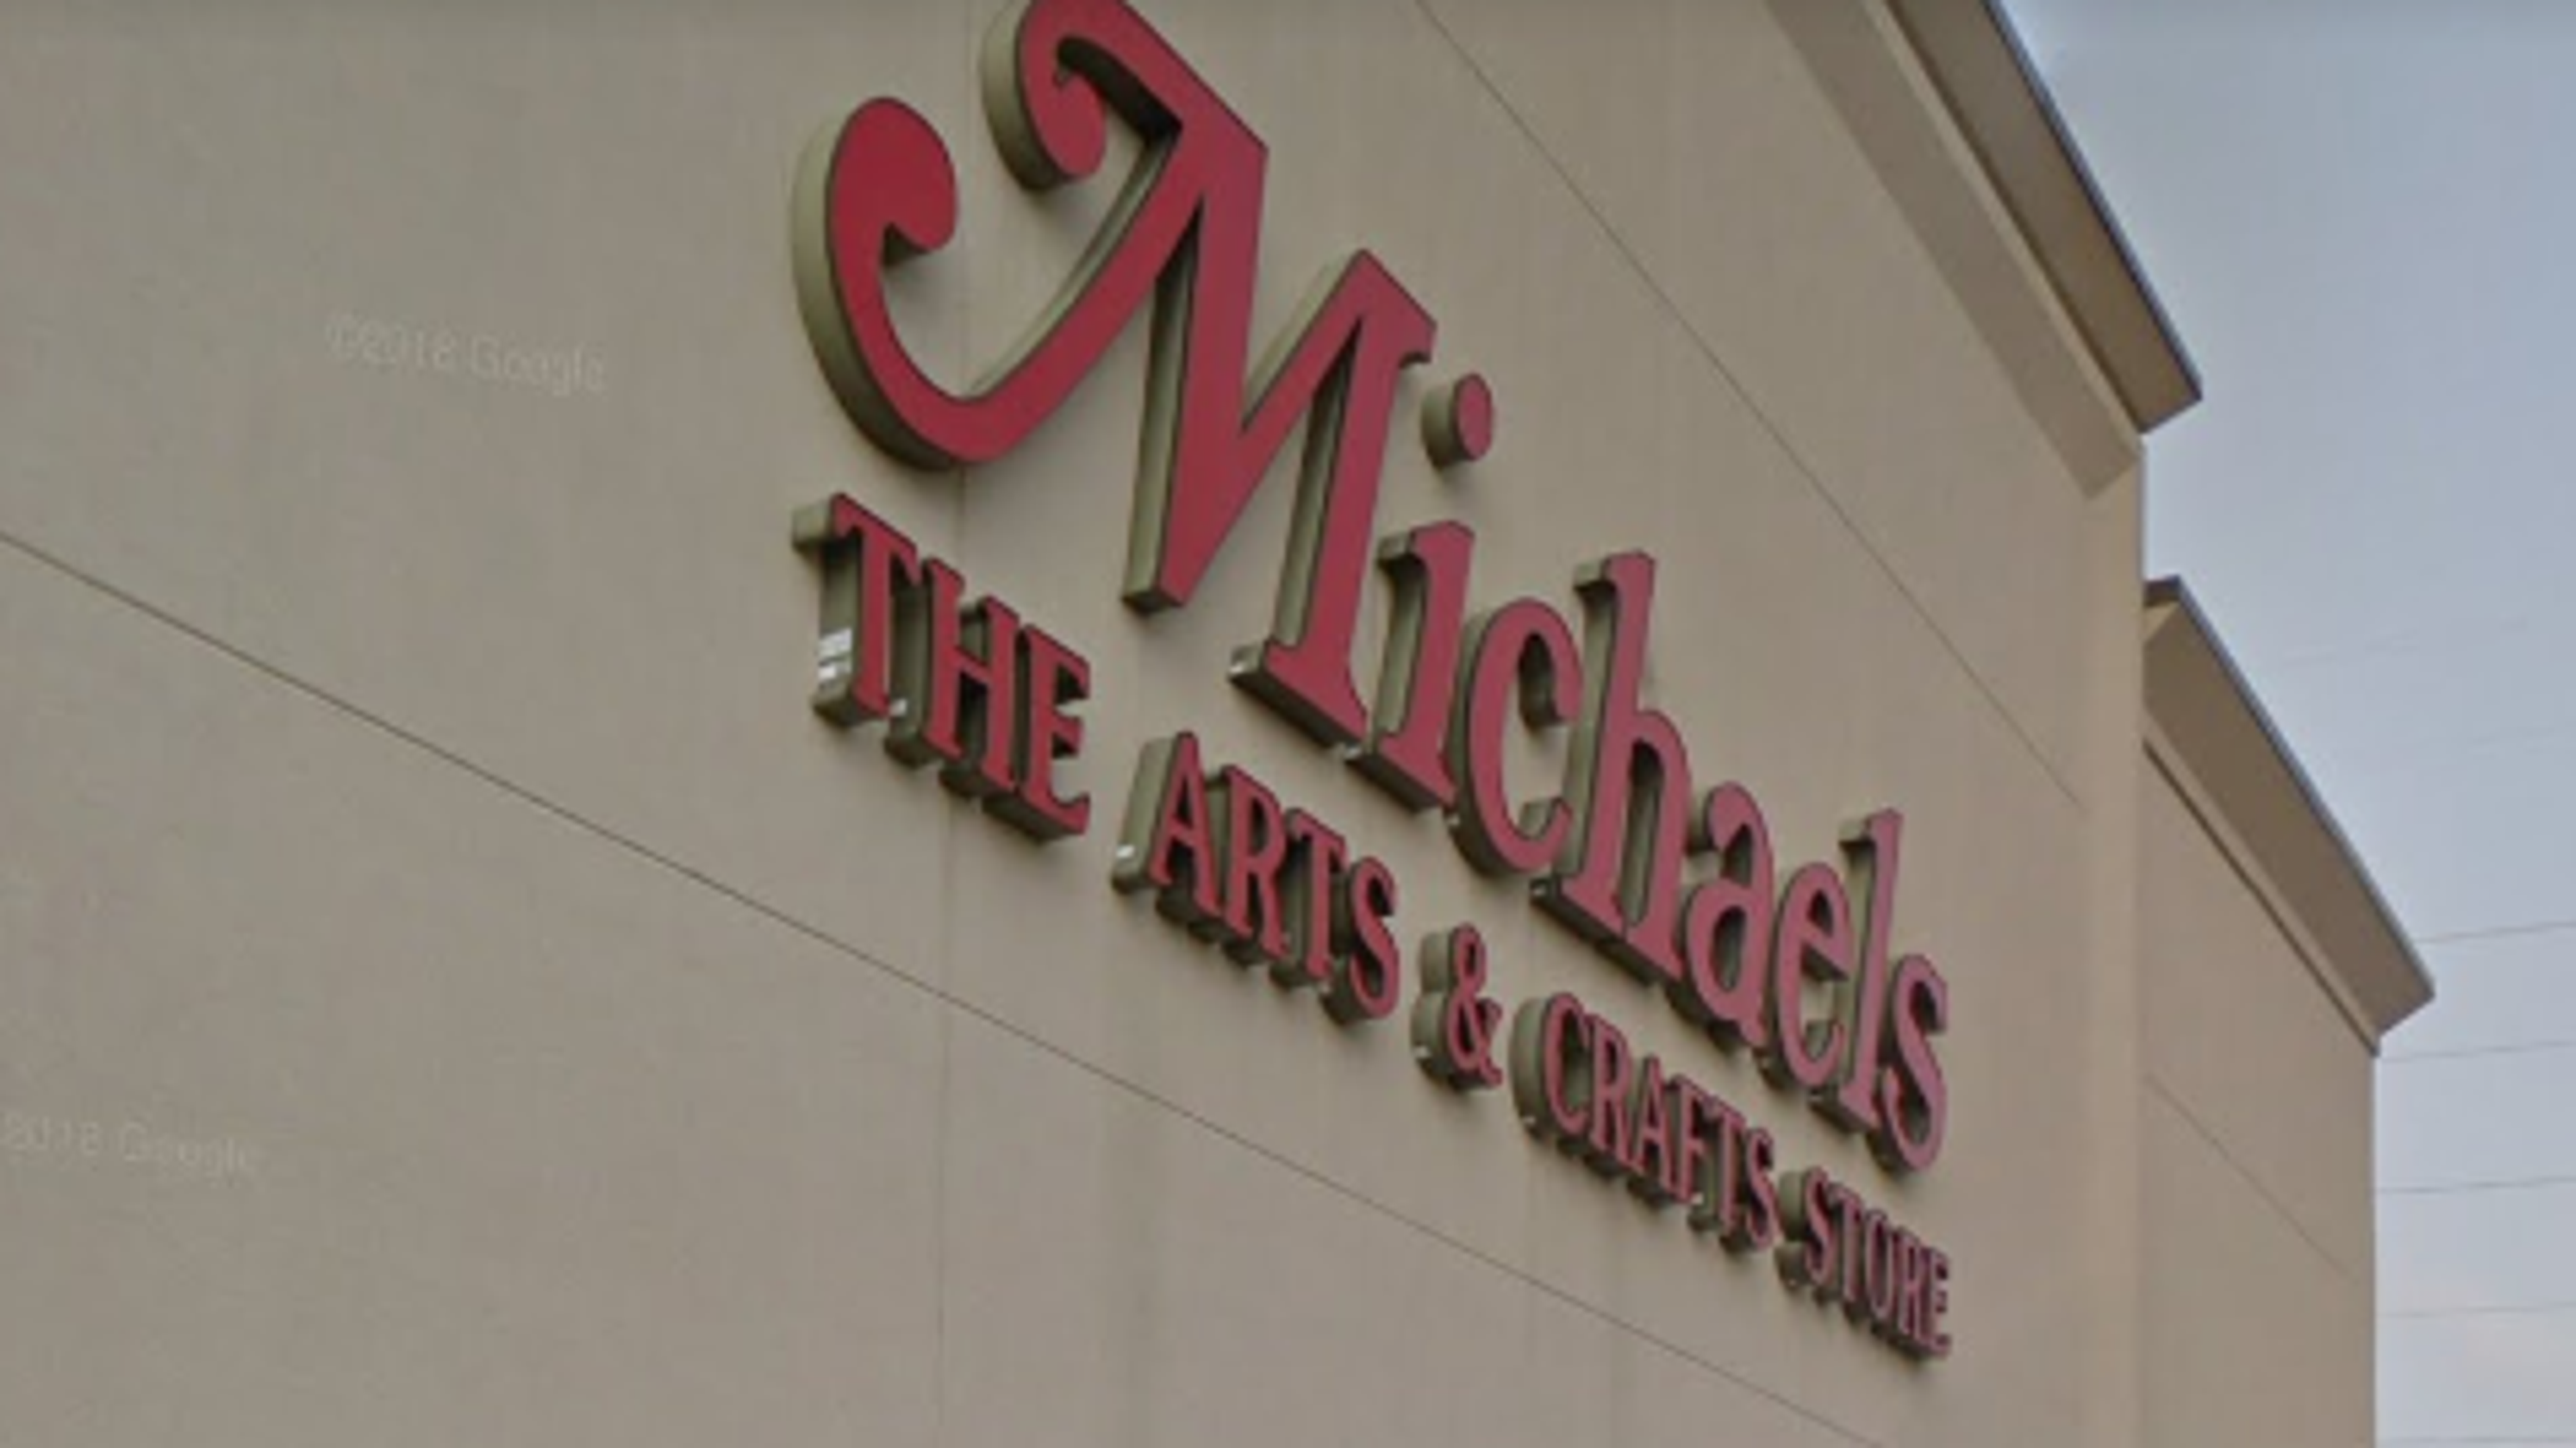 976dcb3bb Michaels doesn't renew lease for West Allis store